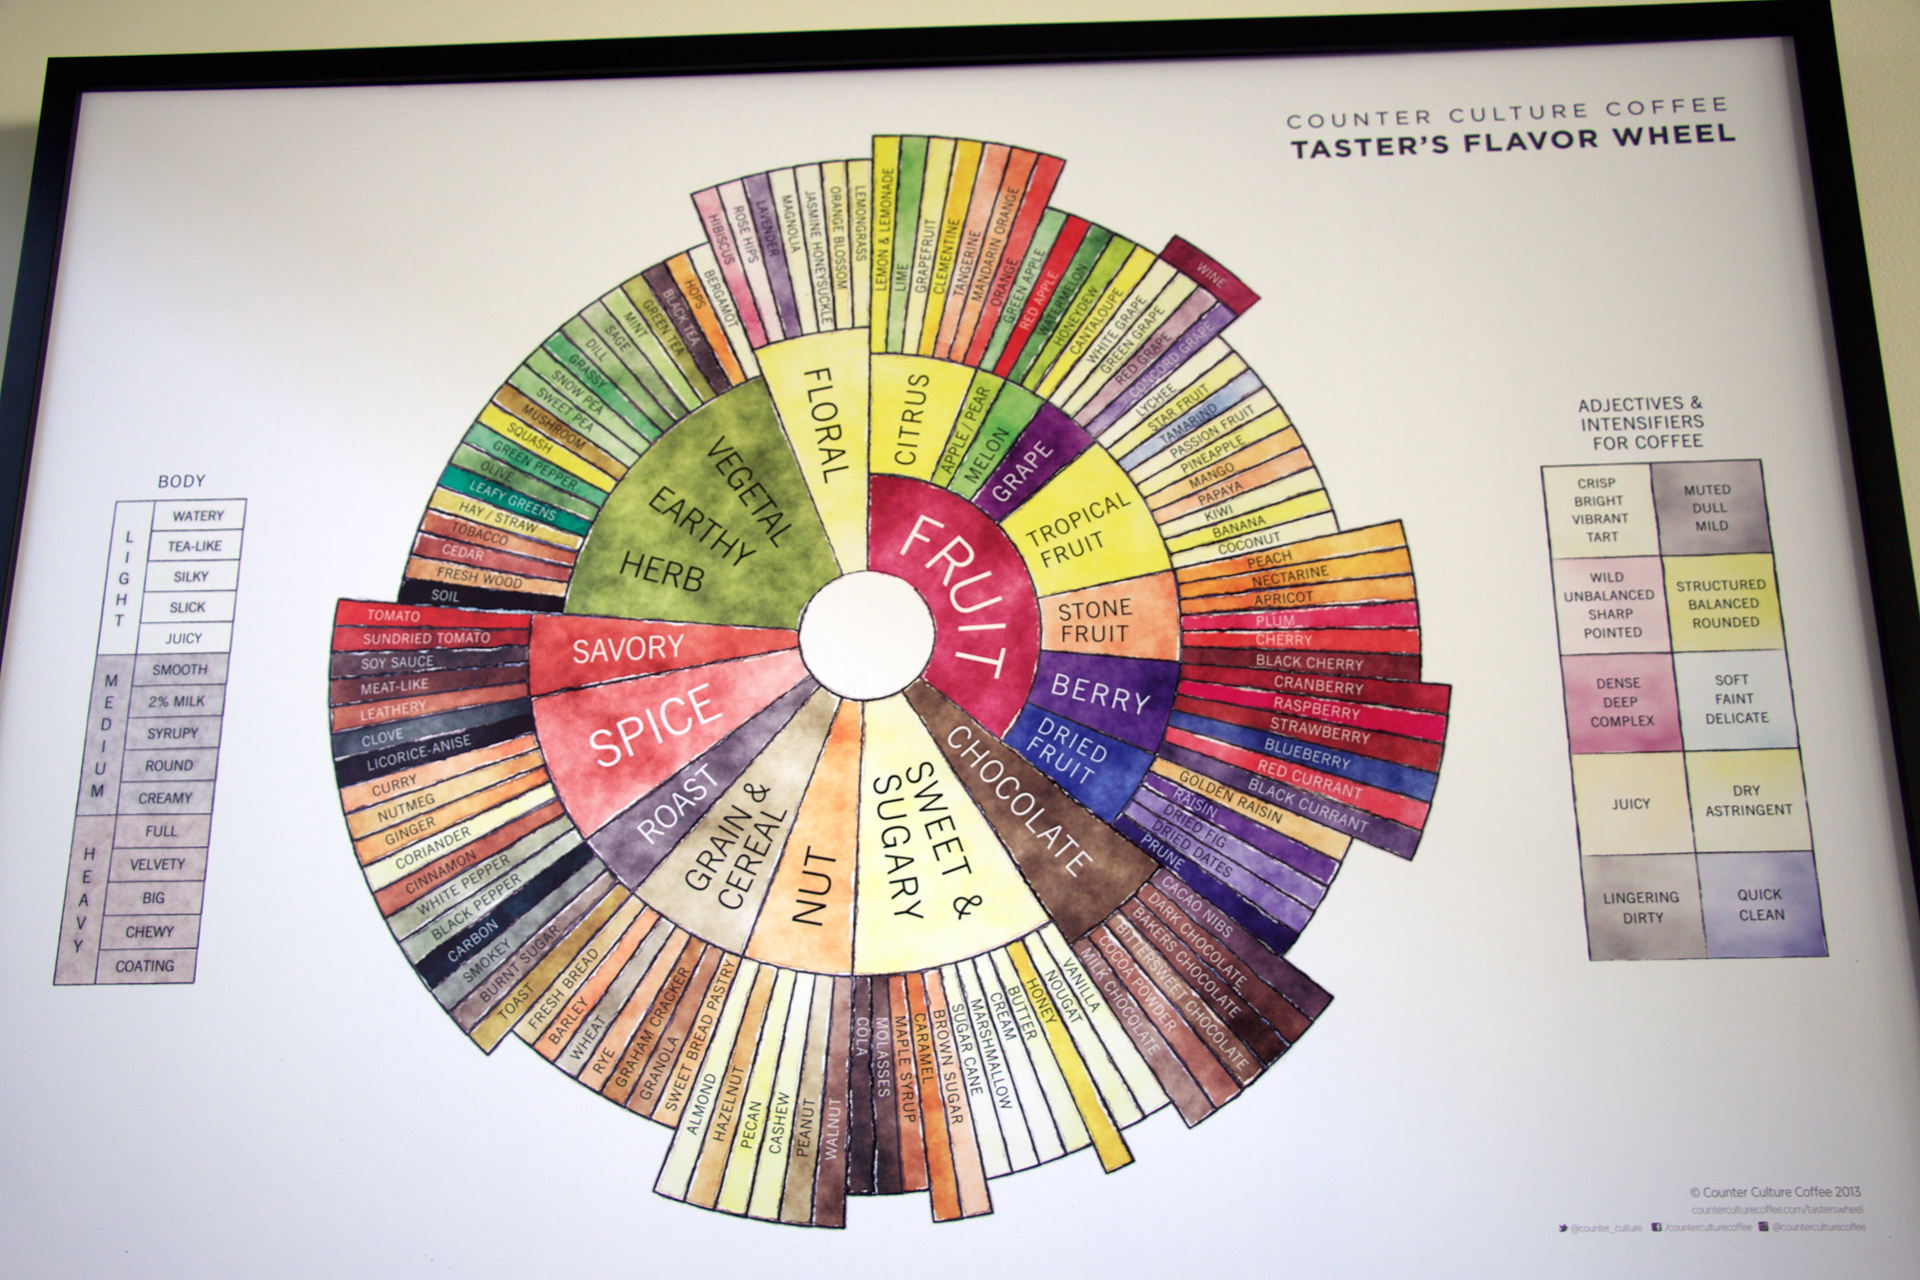 The taster's flavor wheel, developed by Tim Hill, buyer and quality manager.